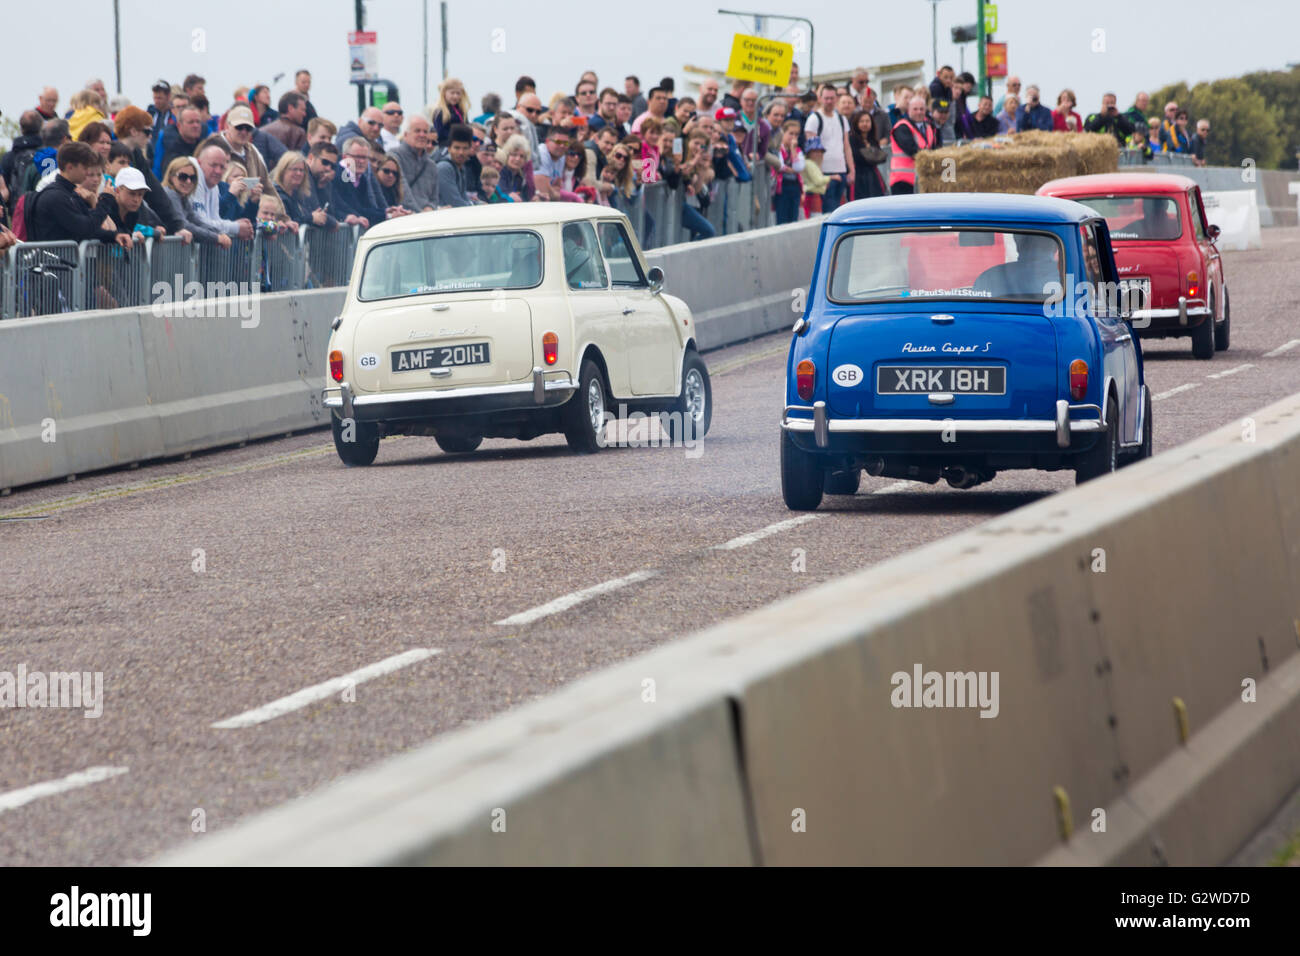 Bournemouth, Dorset UK 3 June 2016. The first day of the Bournemouth Wheels Festival. The Italian Job takes place - Stock Image